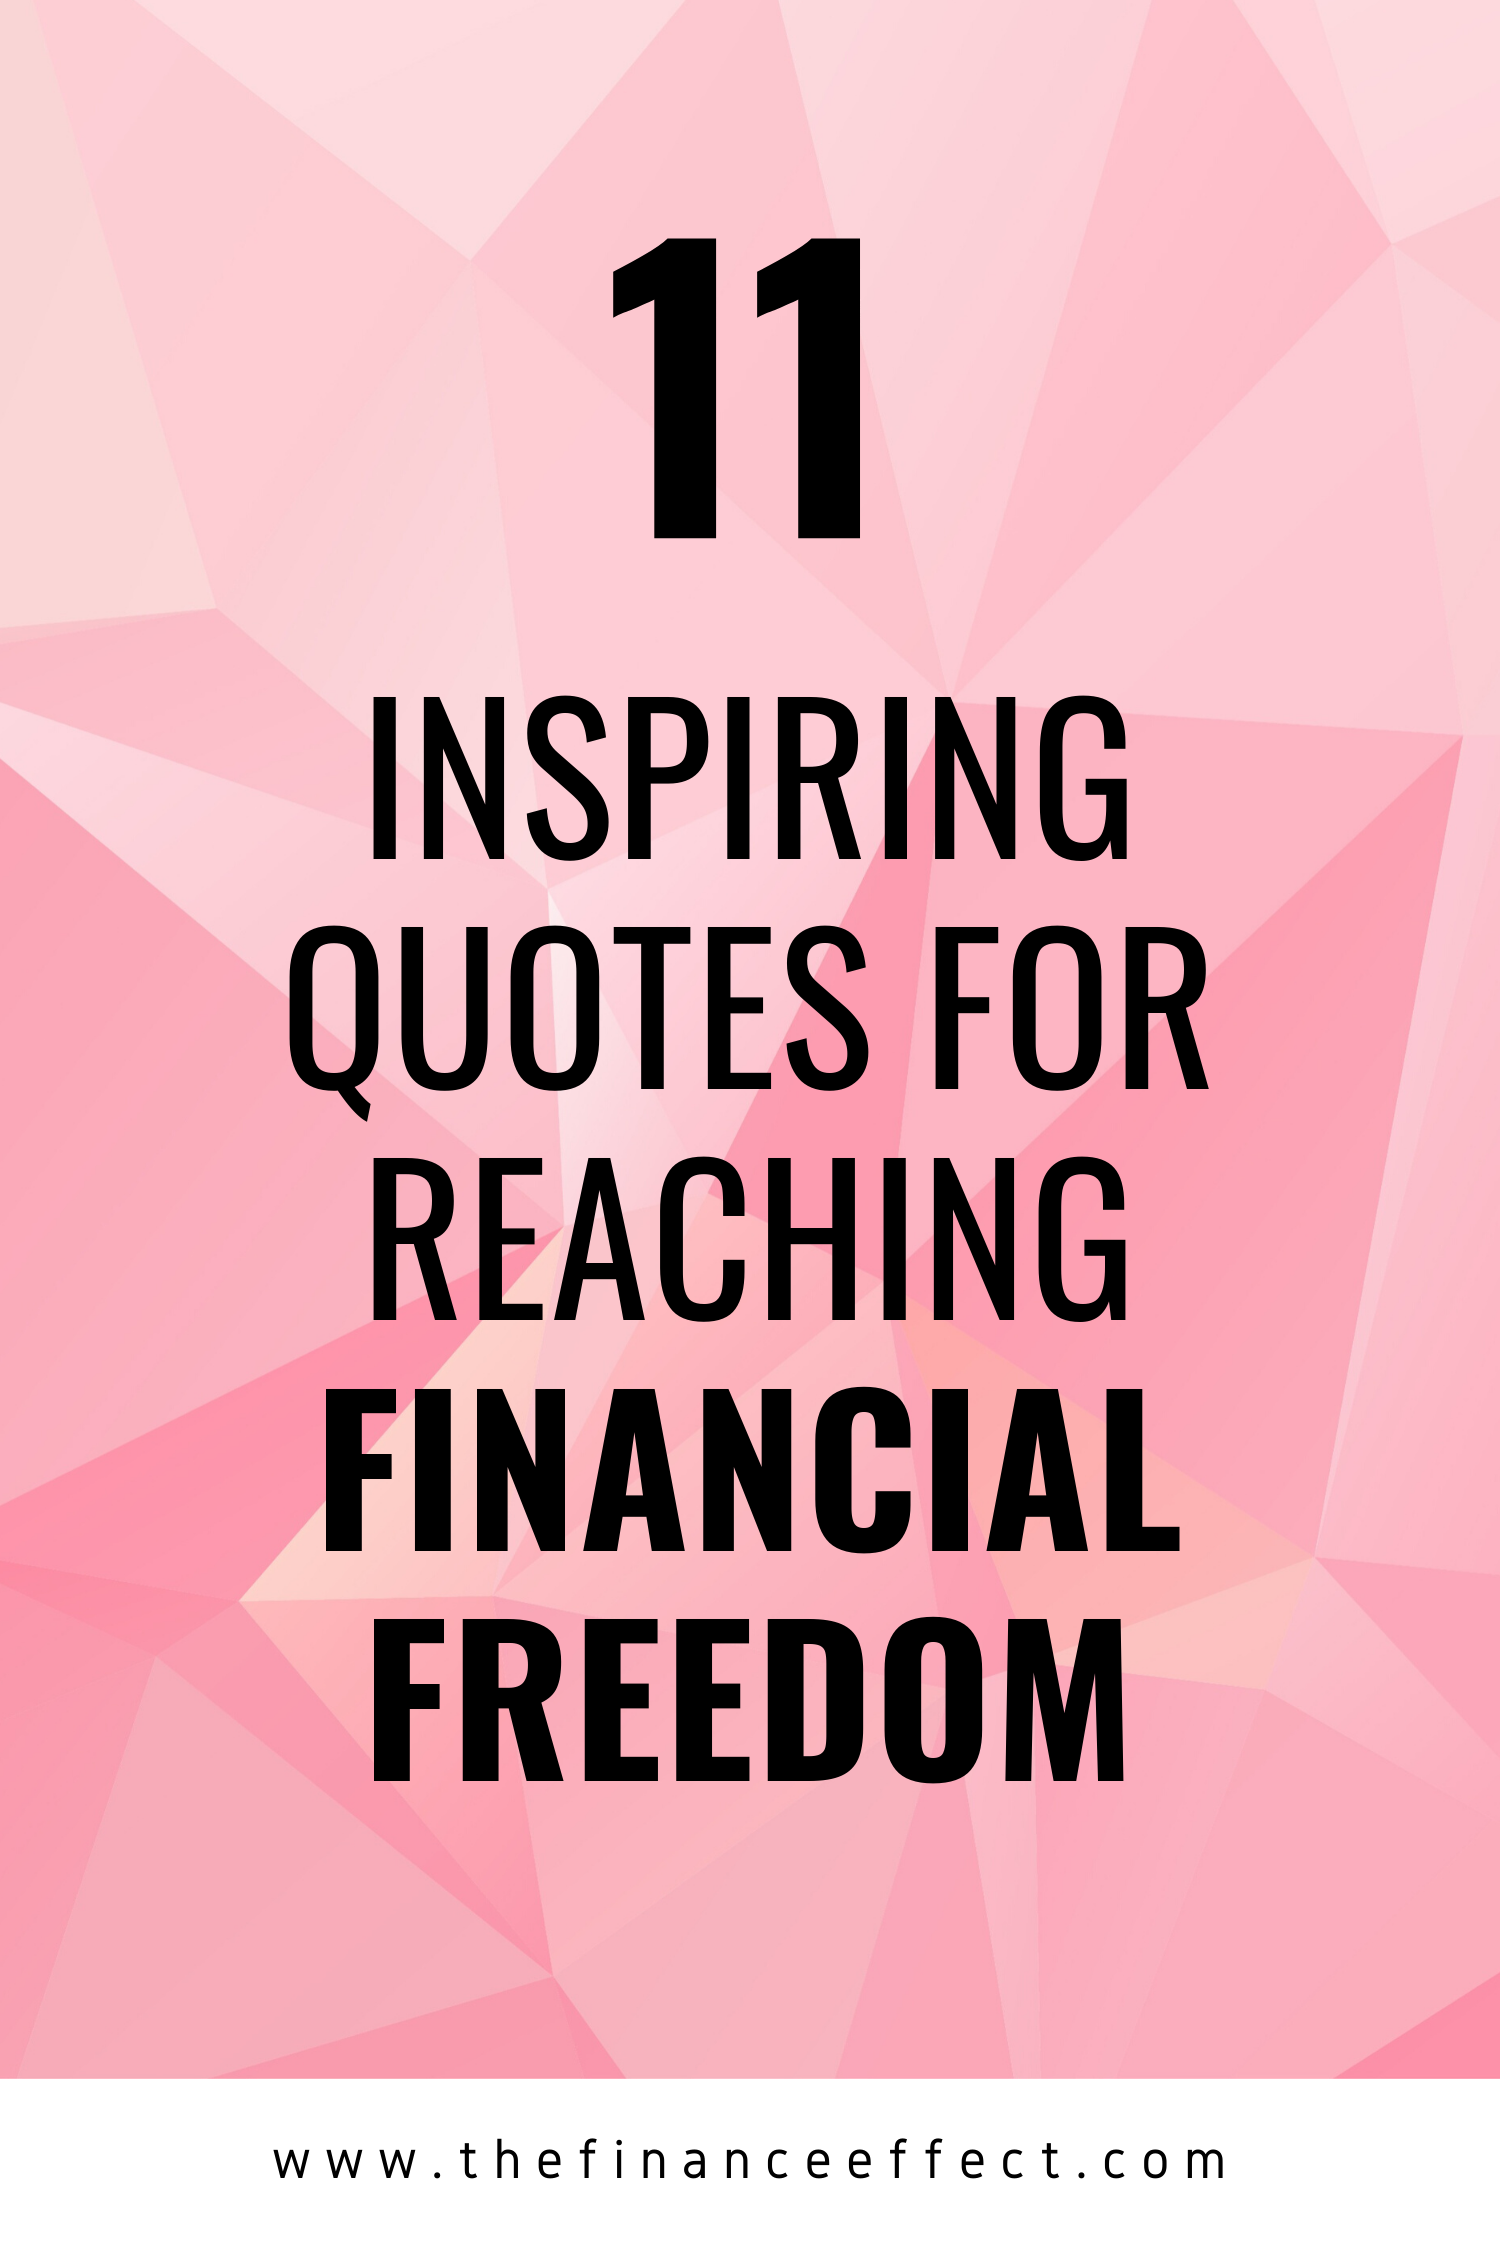 11 Inspiring Quotes For Reaching Financial Freedom The Finance Effect Financial Freedom Quotes Financial Freedom Freedom Quotes